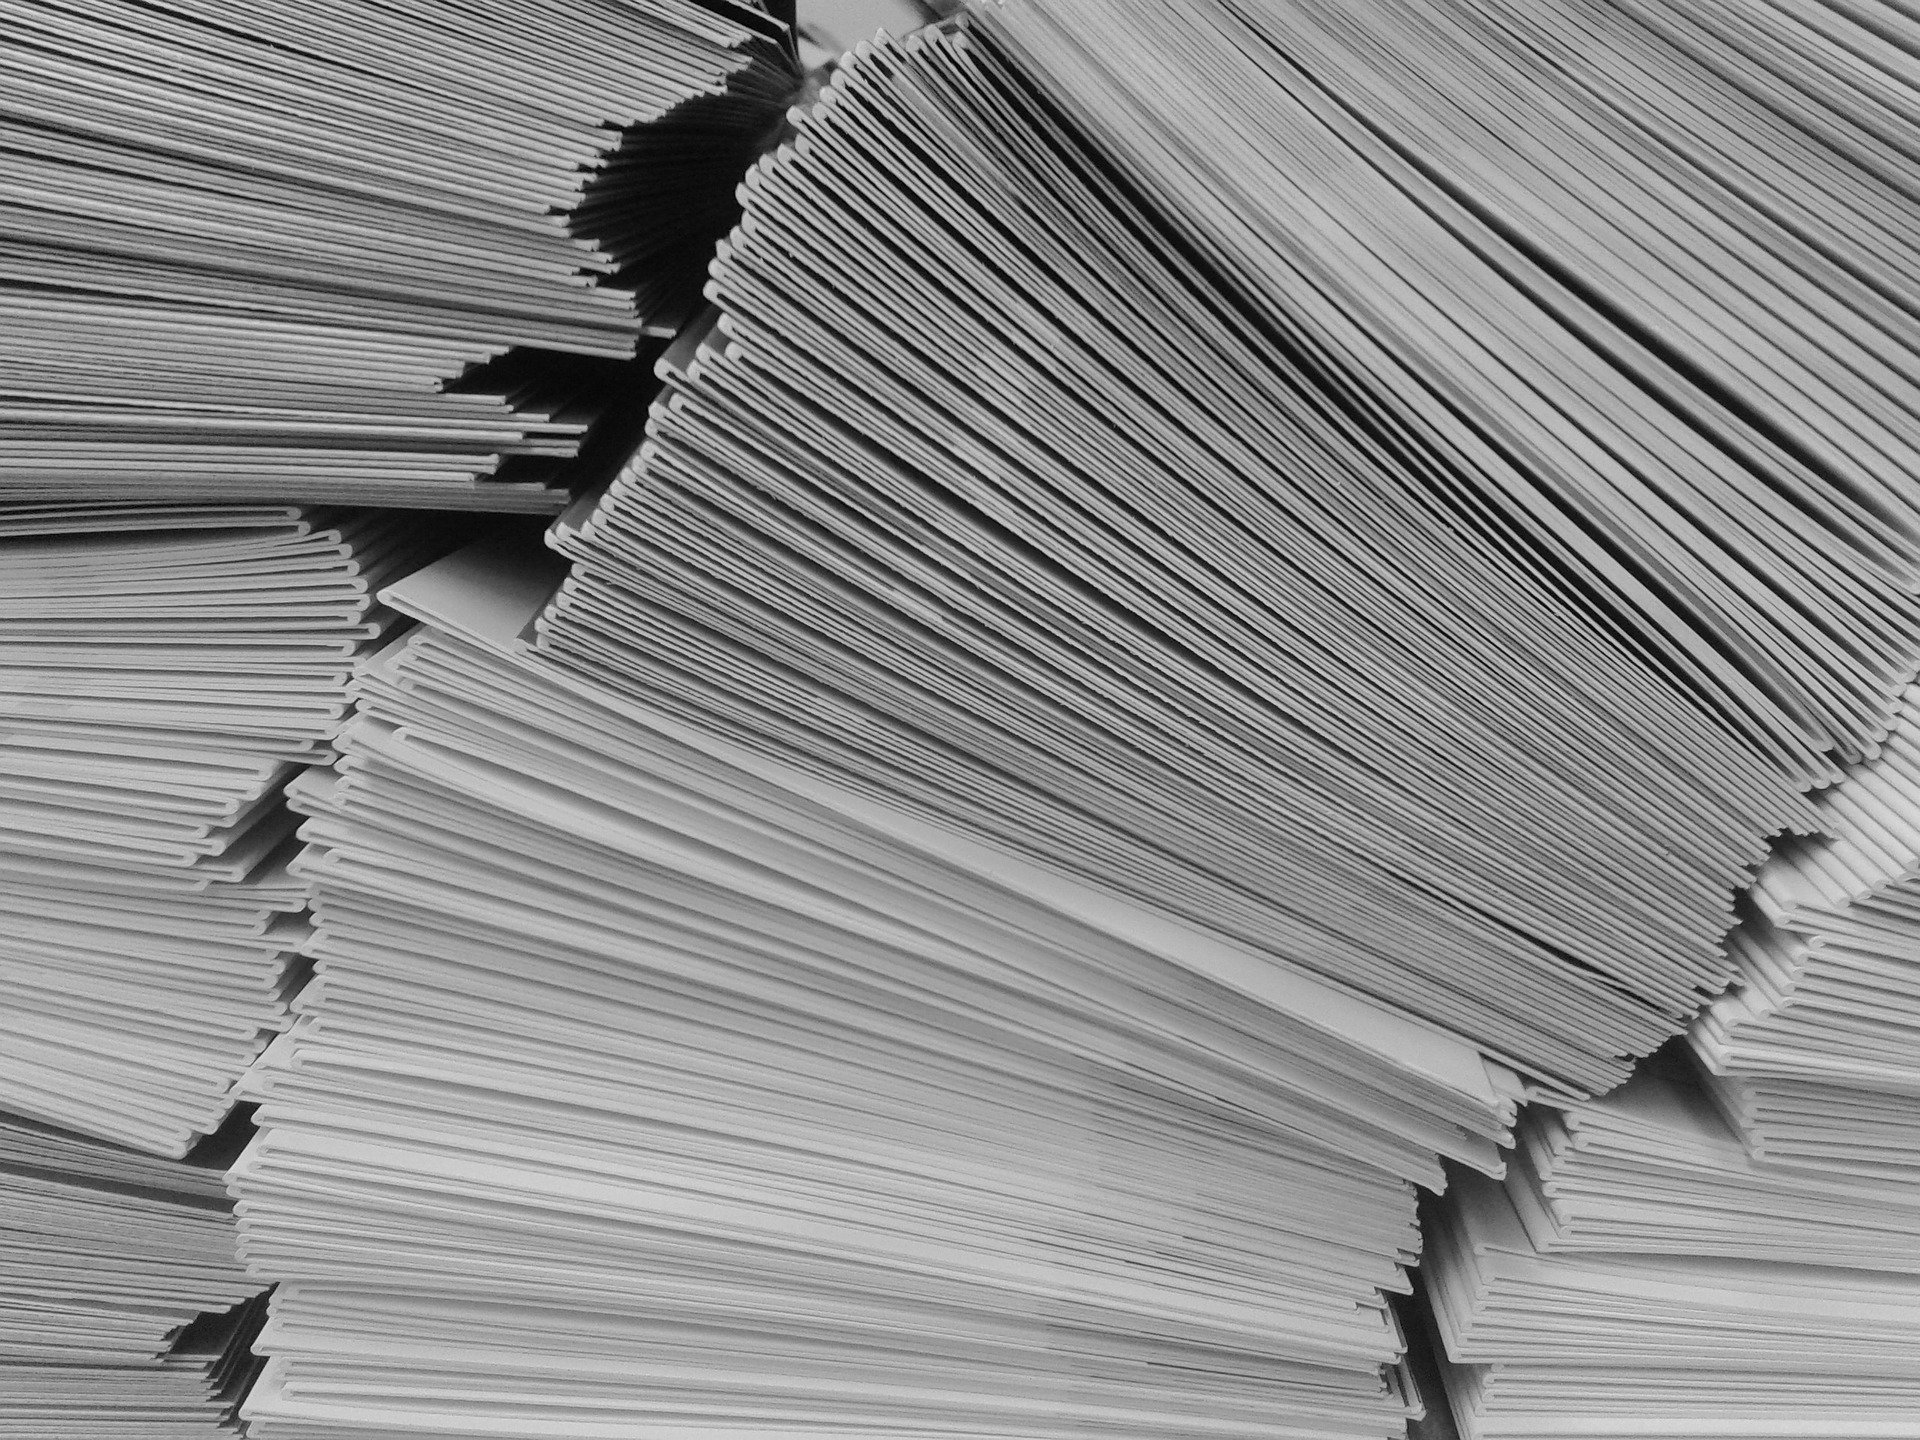 The professor collected all of the students' exam packets, expect for one.   Photo: Pixabay/cocoparisienne